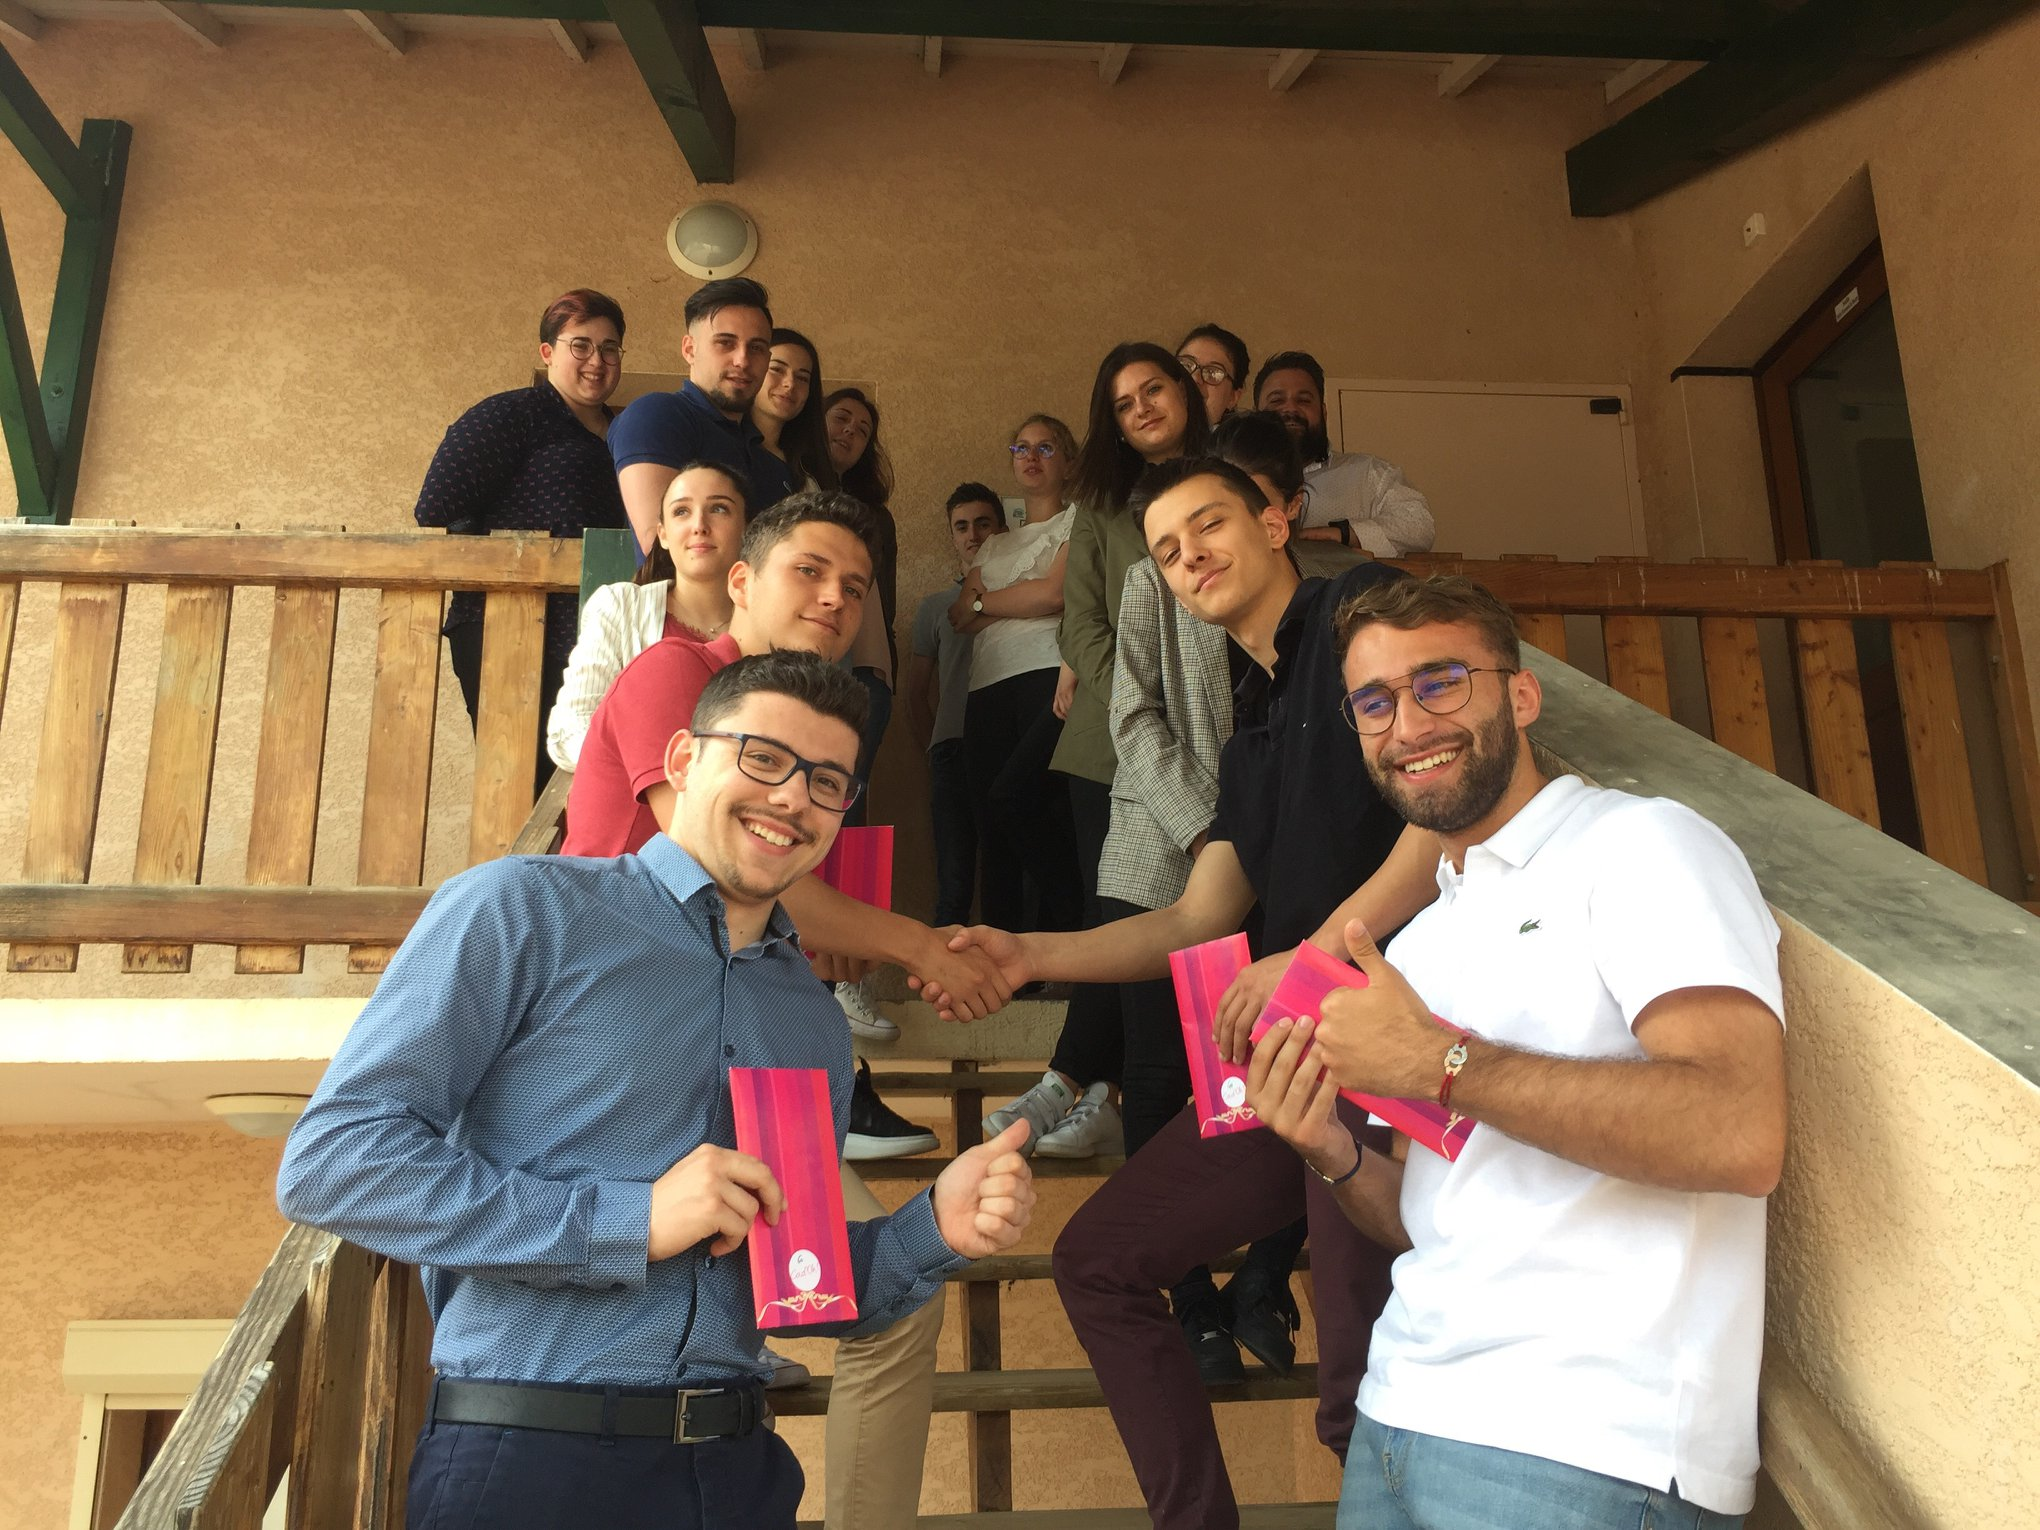 mfr-st-germain-lespinasse-roanne-formation-bts-alternance-stage-pro-commerce-vente-apprentissage-loire-42